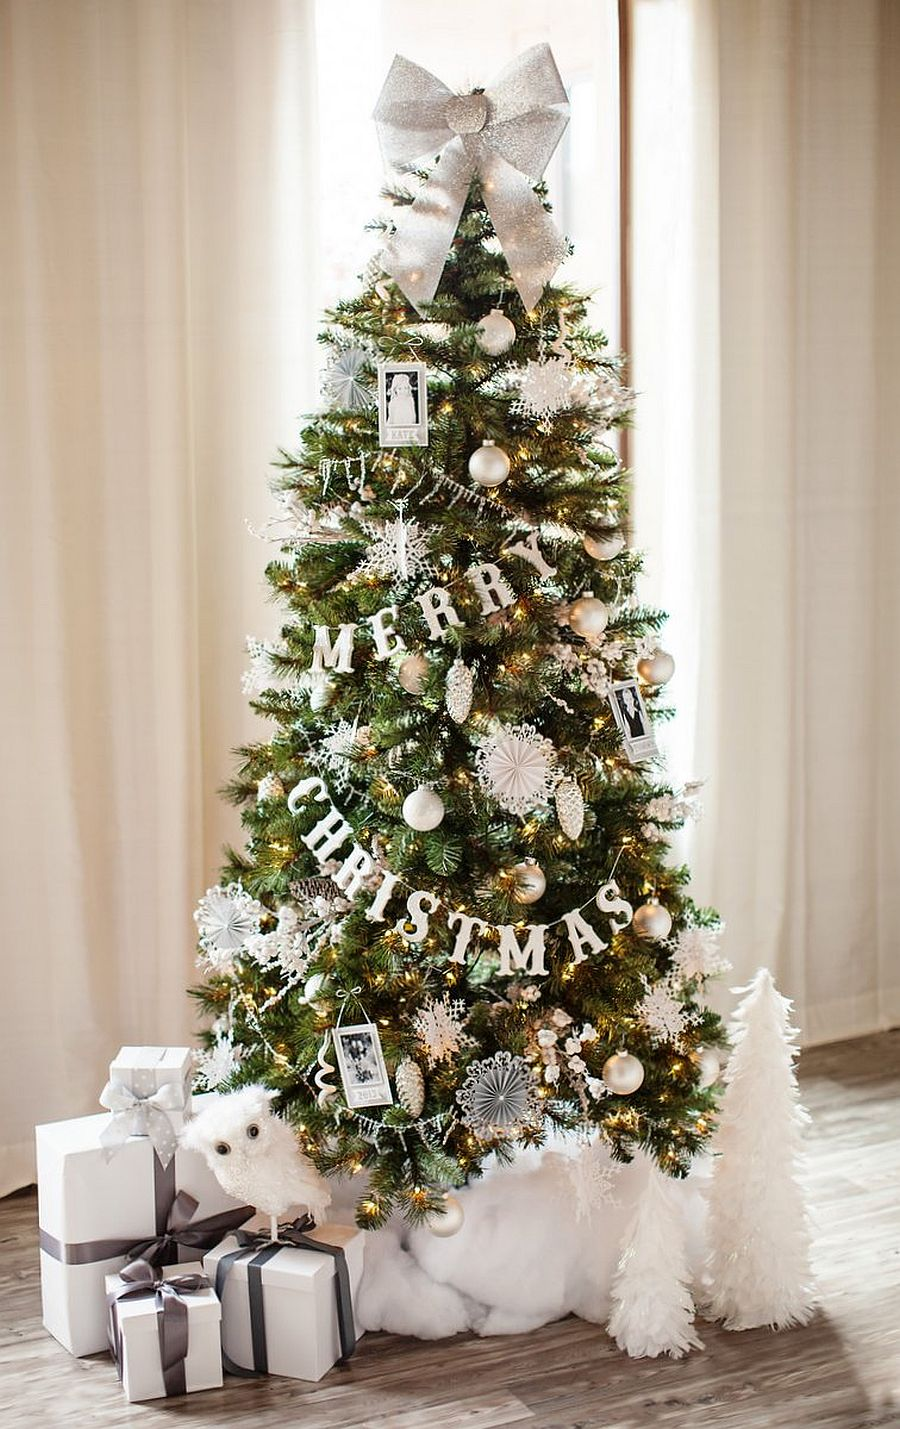 Chic and beautiful Christmas tree garland [From: the TomKat studio]